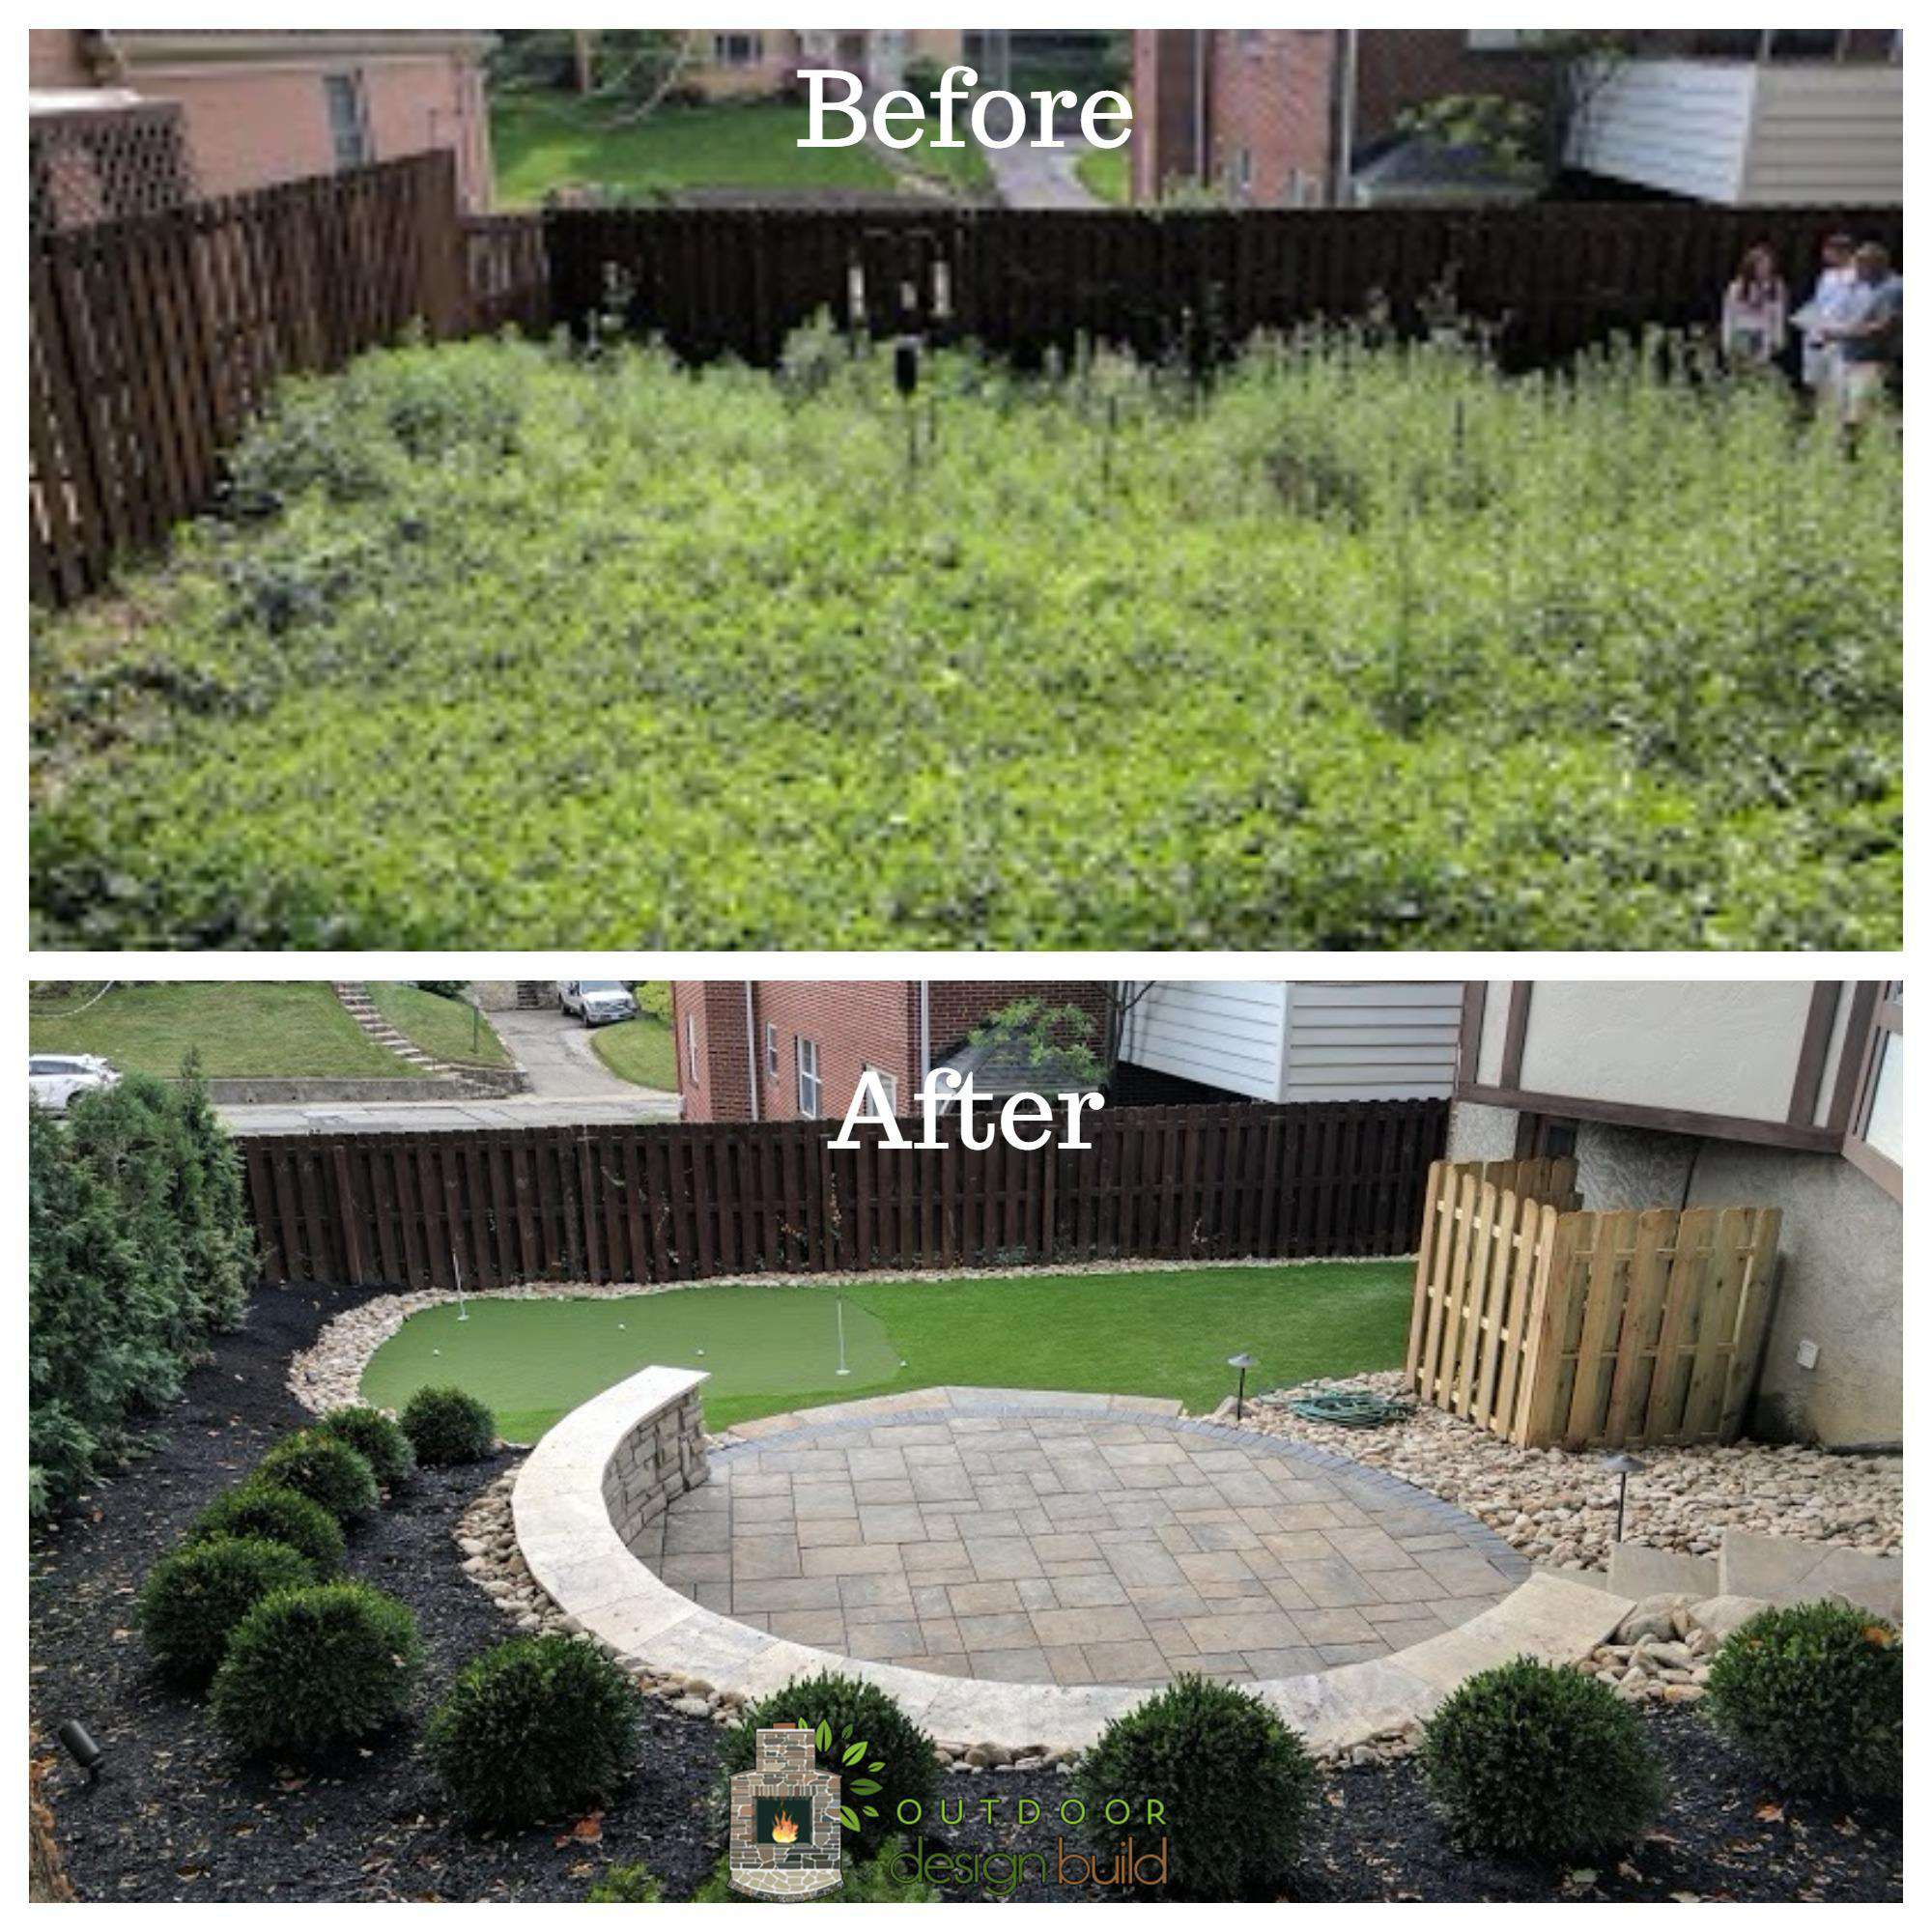 Before and After Patio with Putting Green